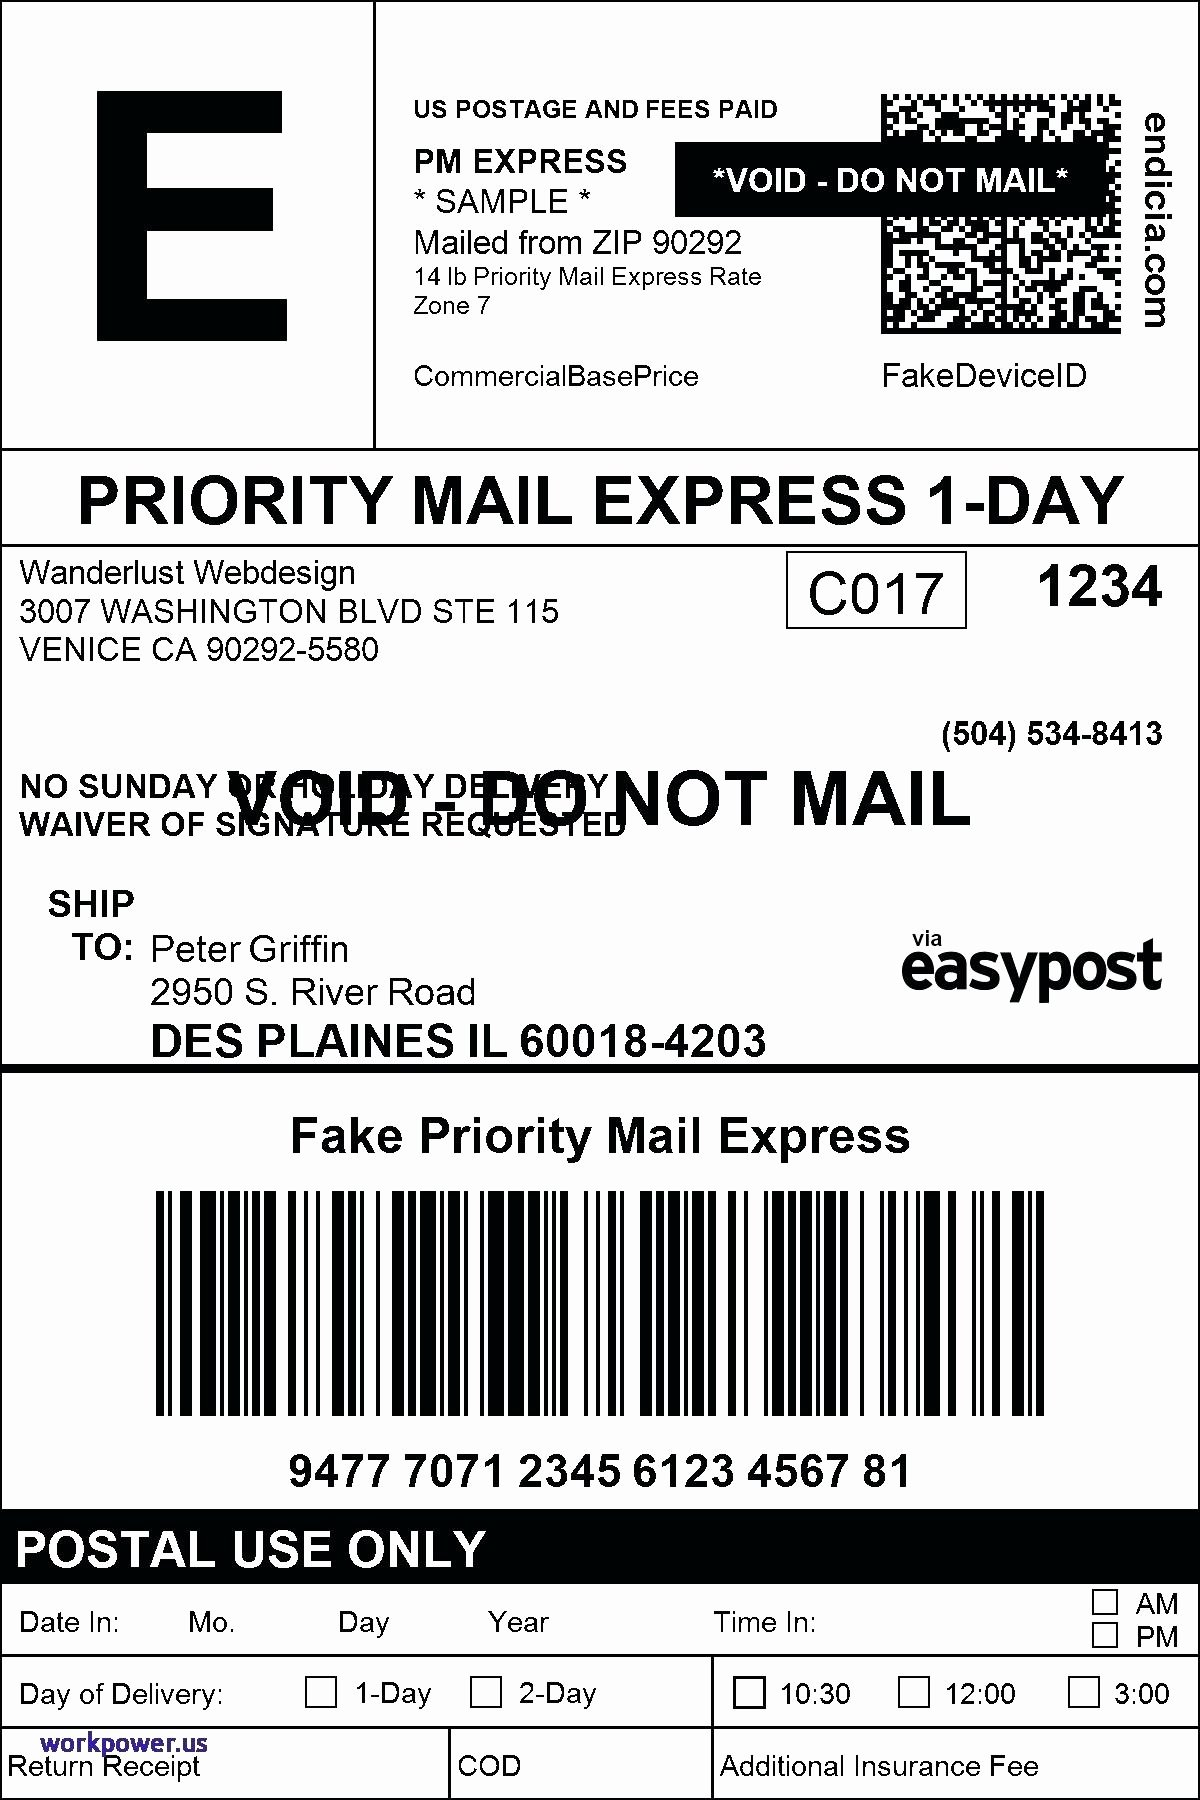 Ups Shipping Label Template Word Made by Creative Label